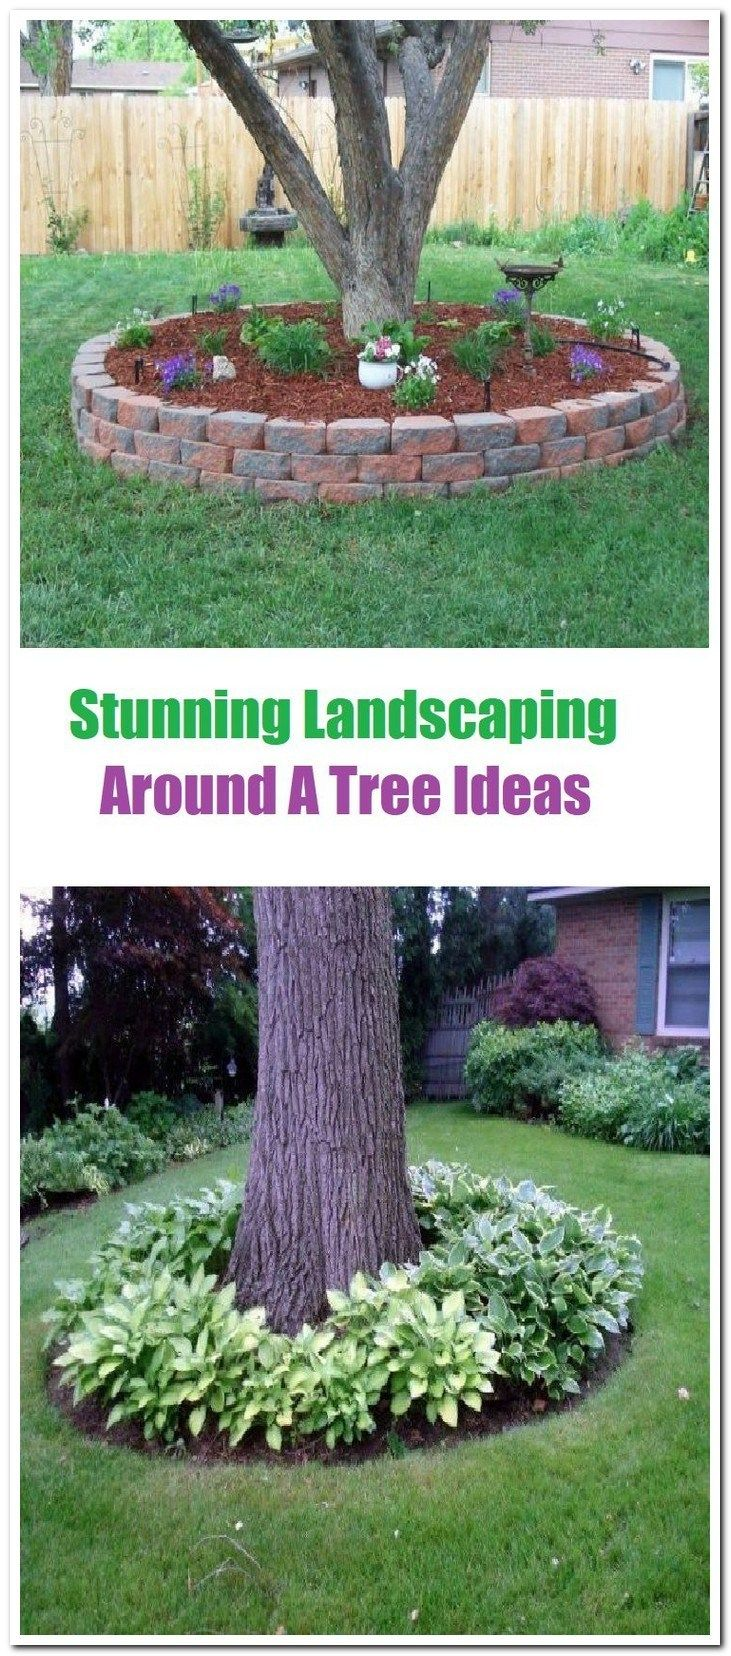 19 Beautiful Lawn Edging Ideas 00047 Landscaping Around